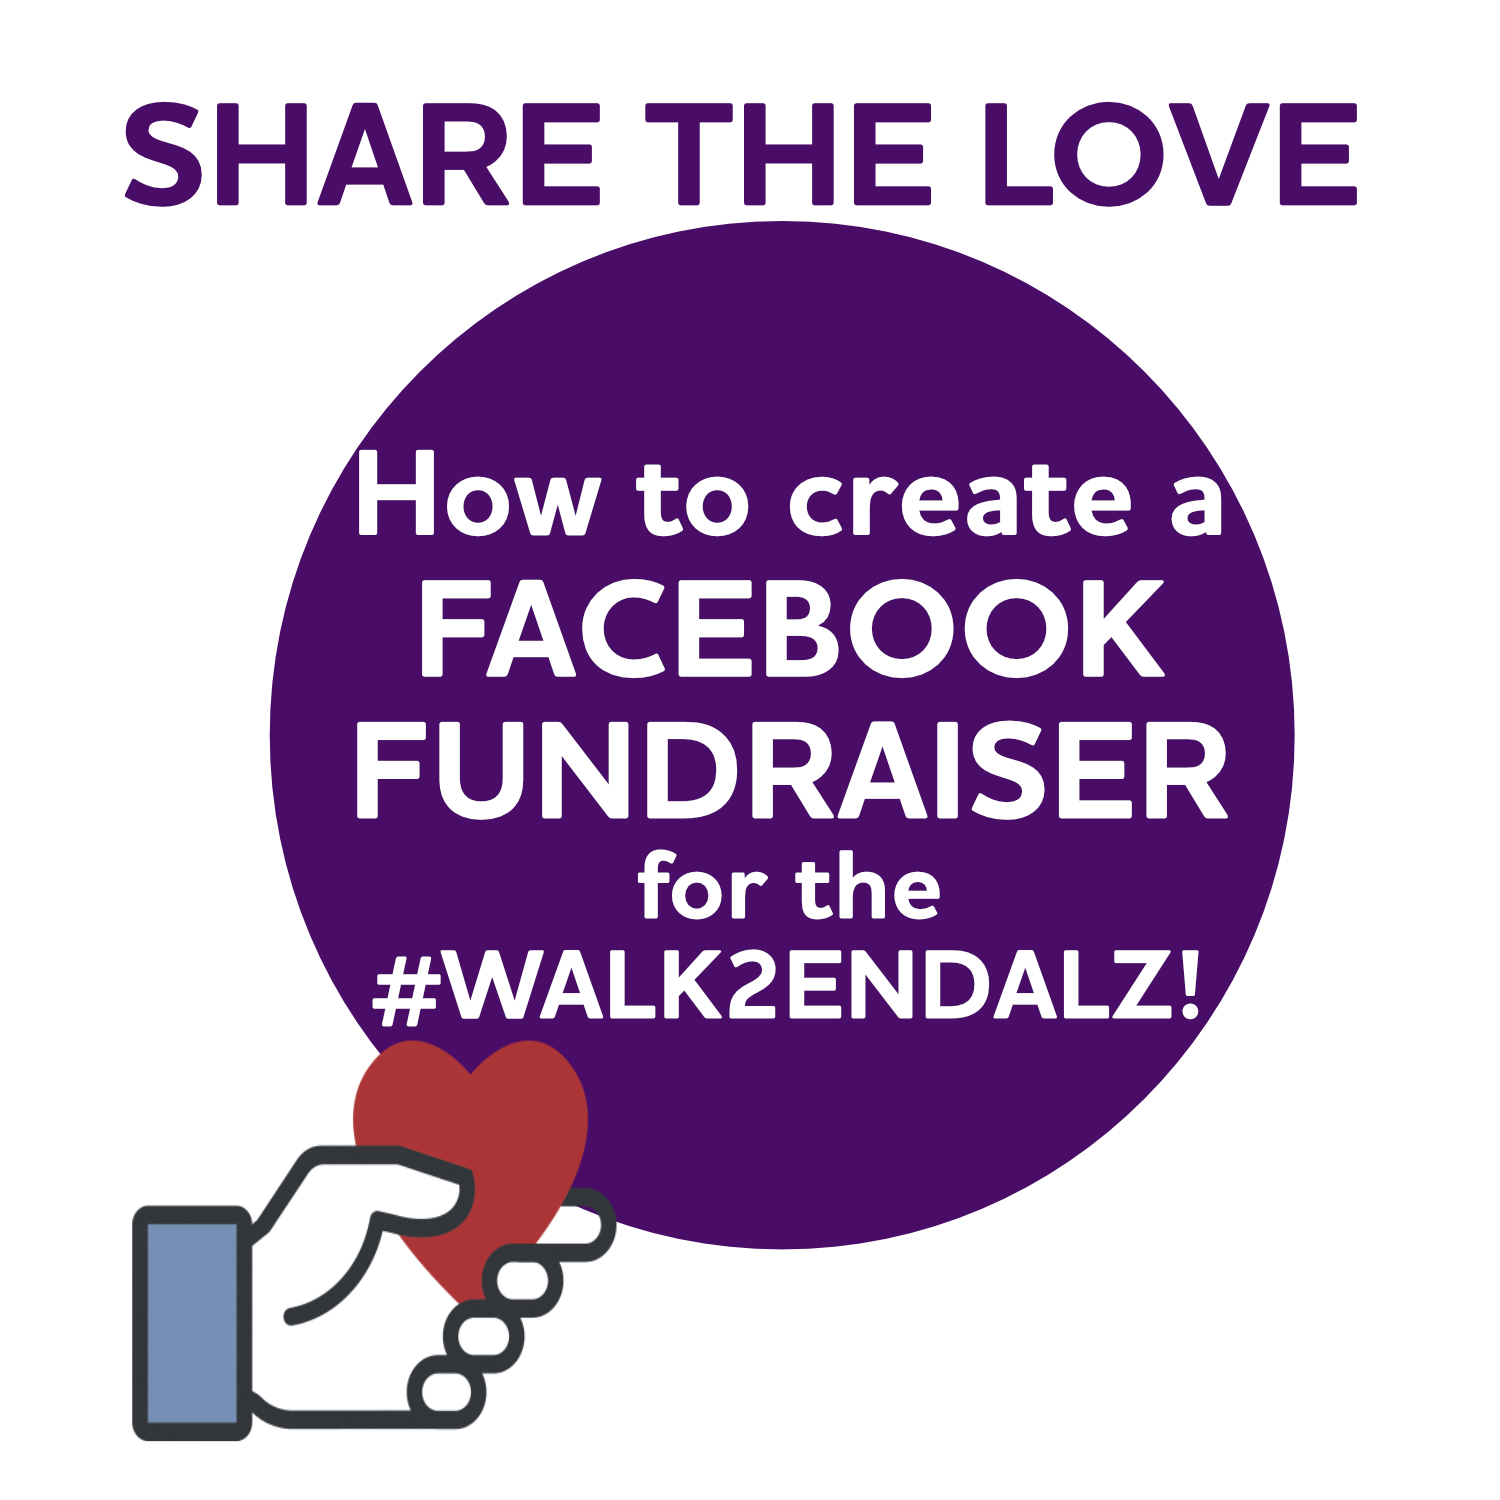 facebook fundraiser for alz.jpg